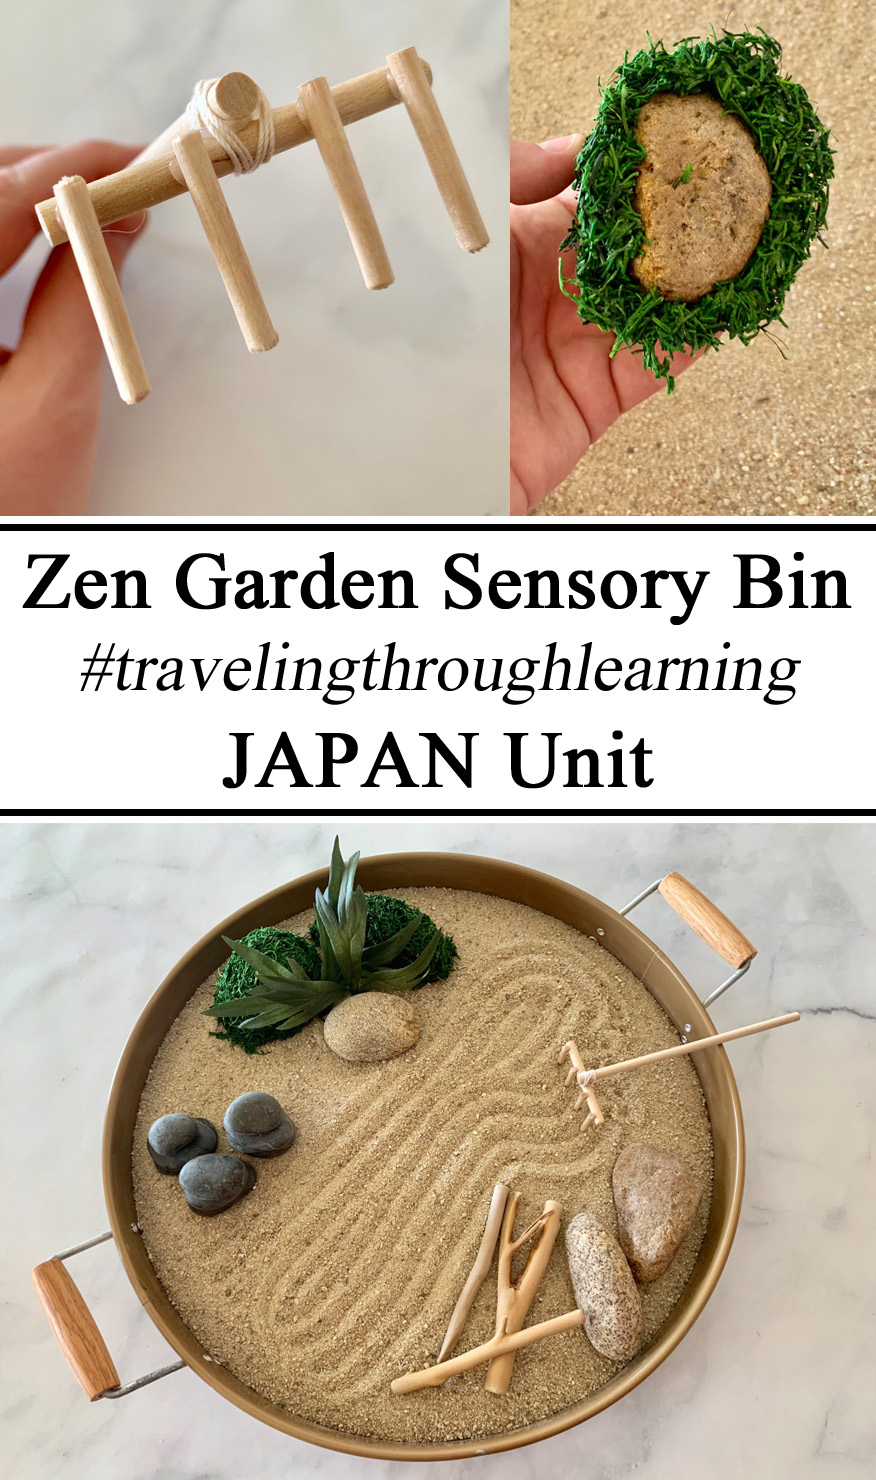 Japan Unit, Global Citizens, Little Passports, Zen Garden, Sensory Play Bin Tray, Sensory Processing Disorder, SPD, Autism, Autistic Activities, Activity, Hands on Learning, Educational, Medication, Buddhist, Homeschool, Homeschooling, Montessori, DIY, Handmade, Preschool, Kindergarden, Elementary, Ideas, Inspiration, Waldorf, Small World Play